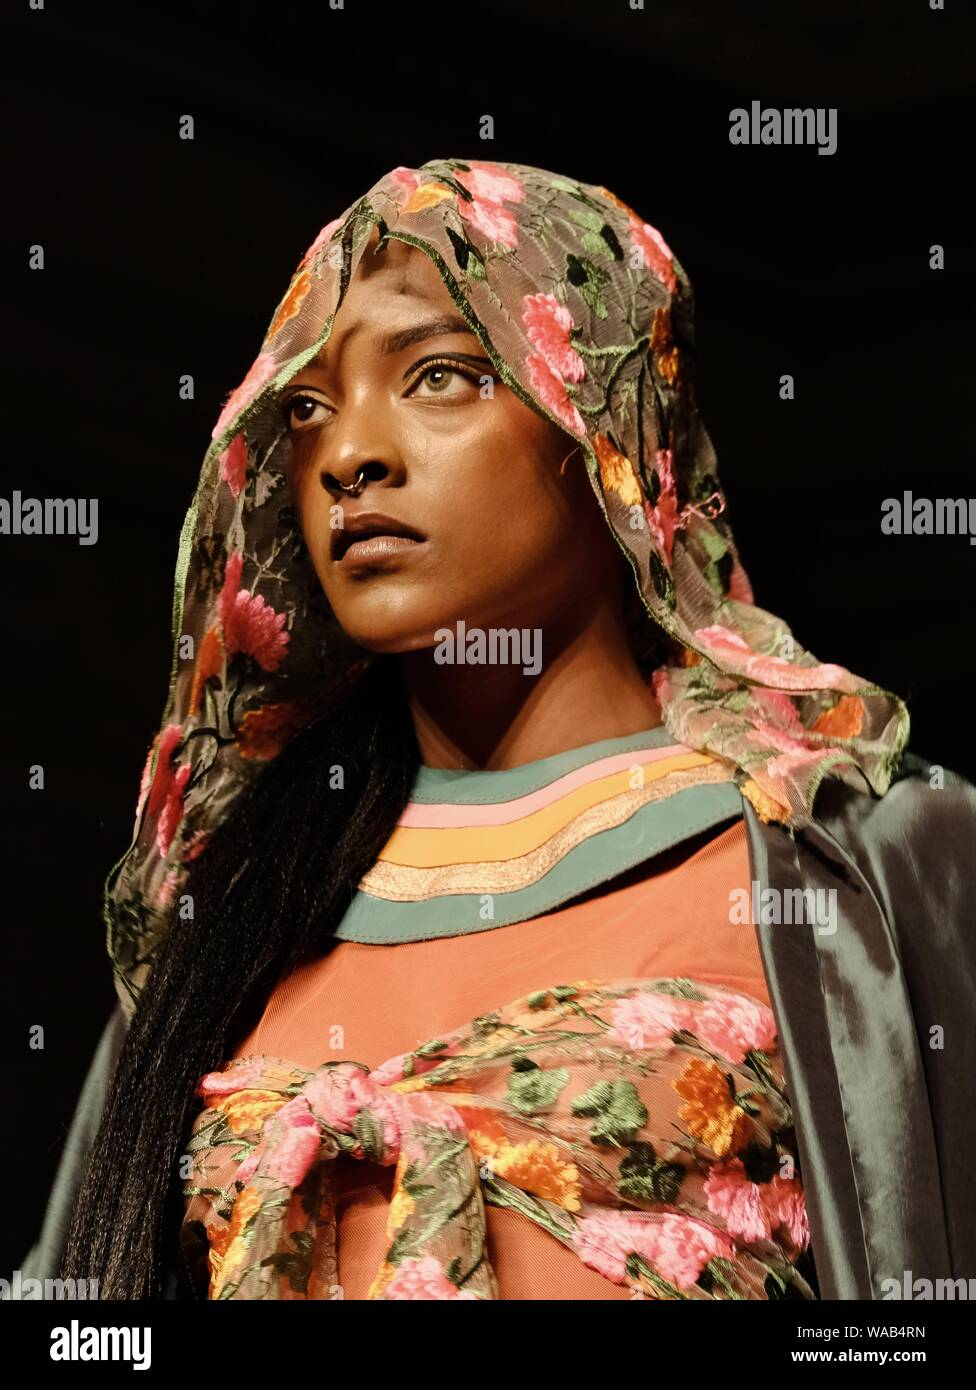 Designer Muhire showcases work on the catwalk at the Africa Fashion Week held at the Freemason's Hall, London. Stock Photo